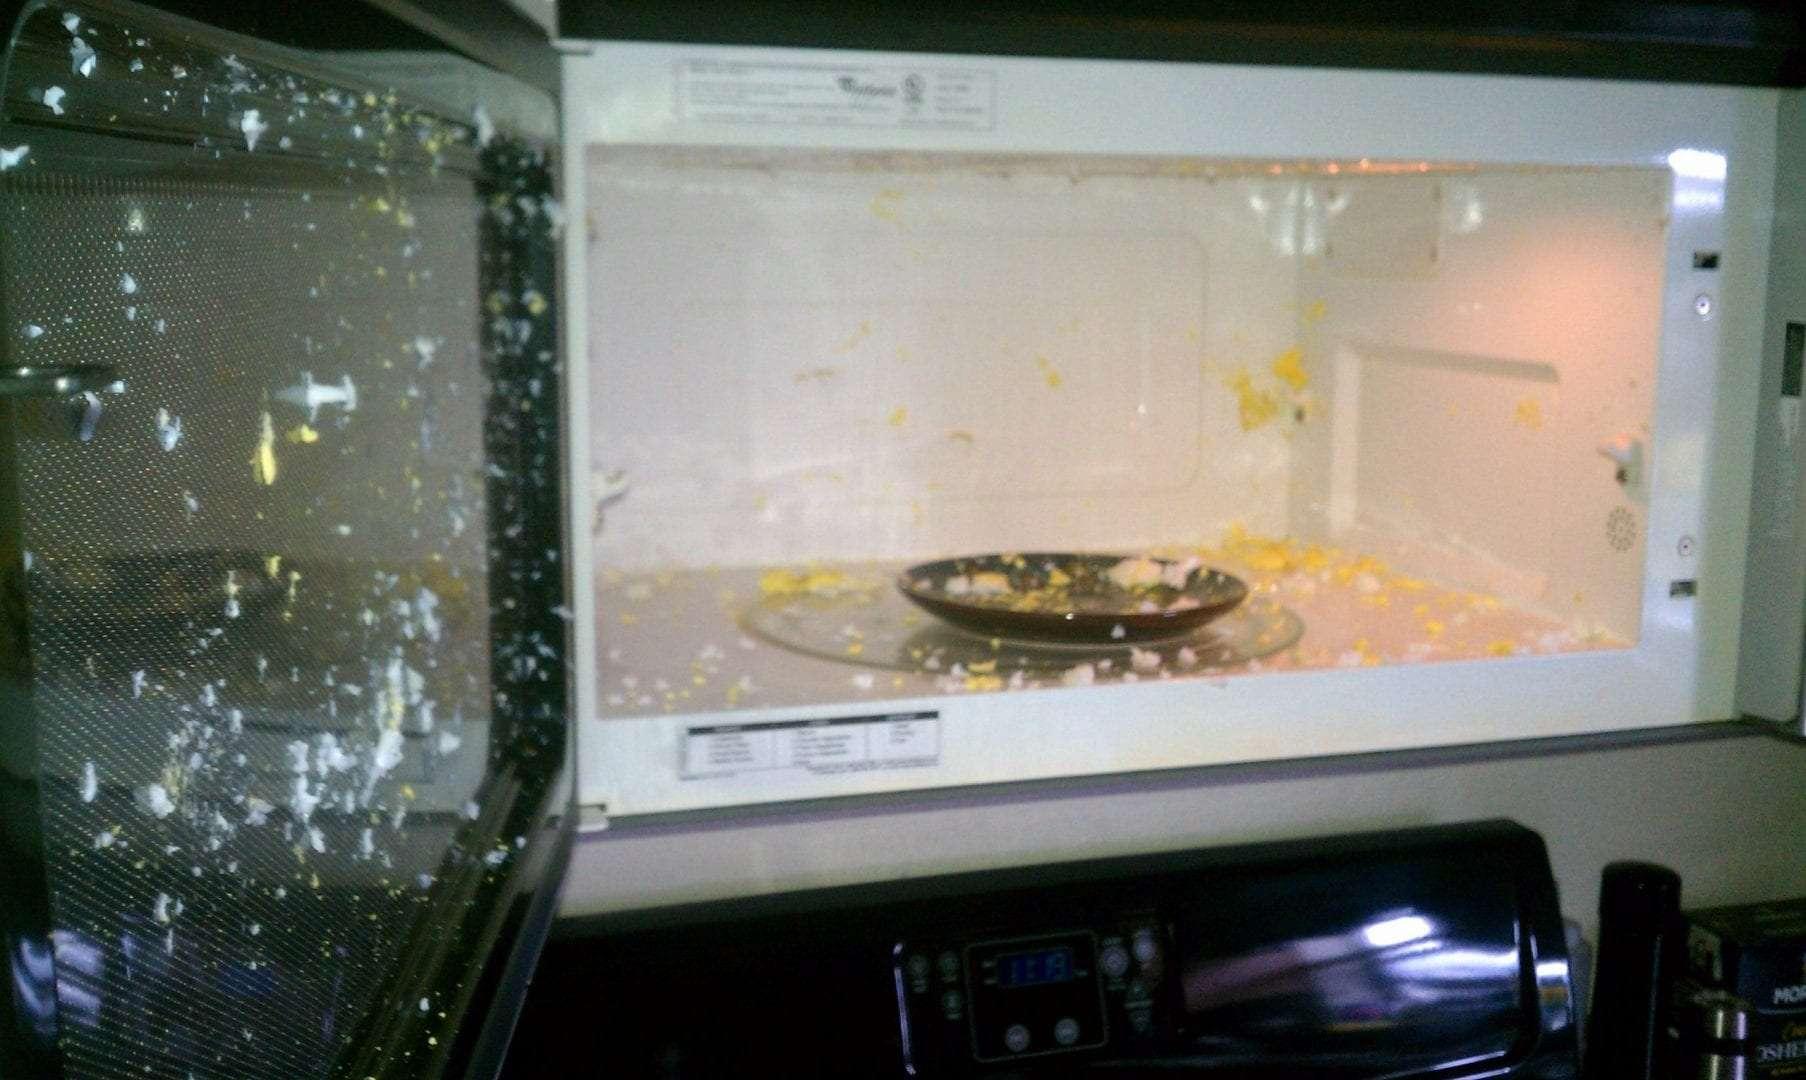 Food exploded in microwave.